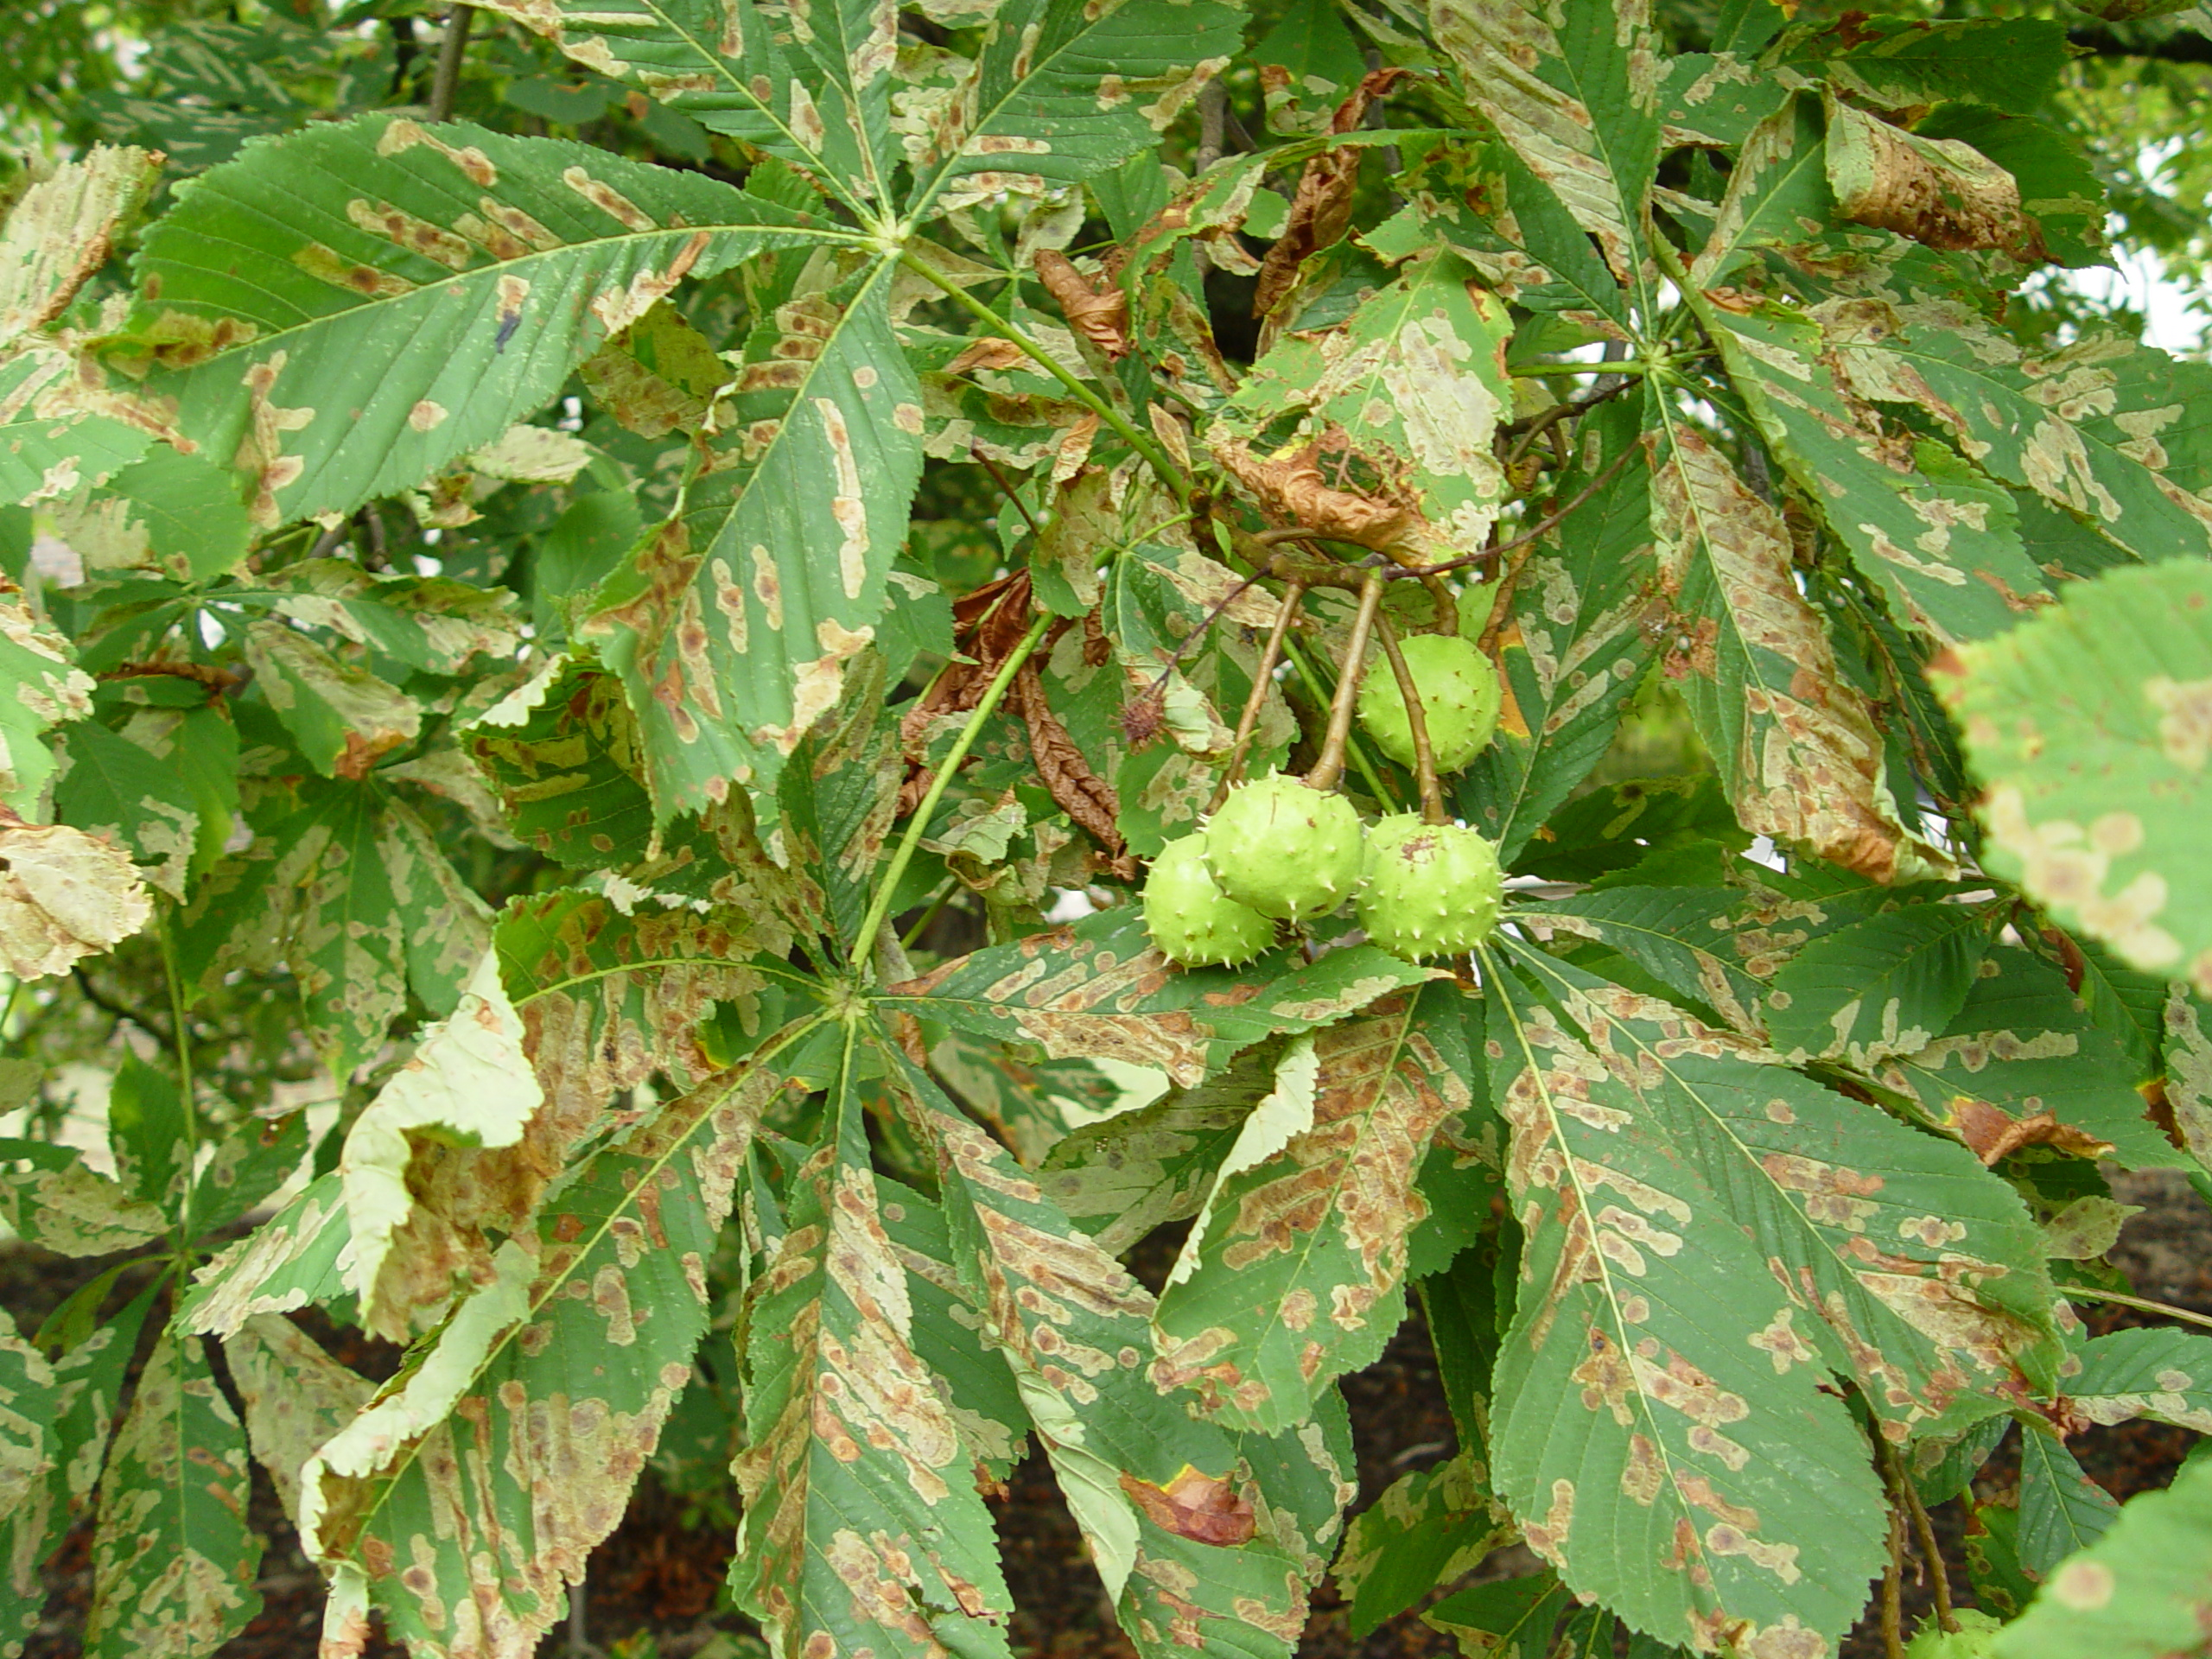 How to control horse chestnut leaf miner